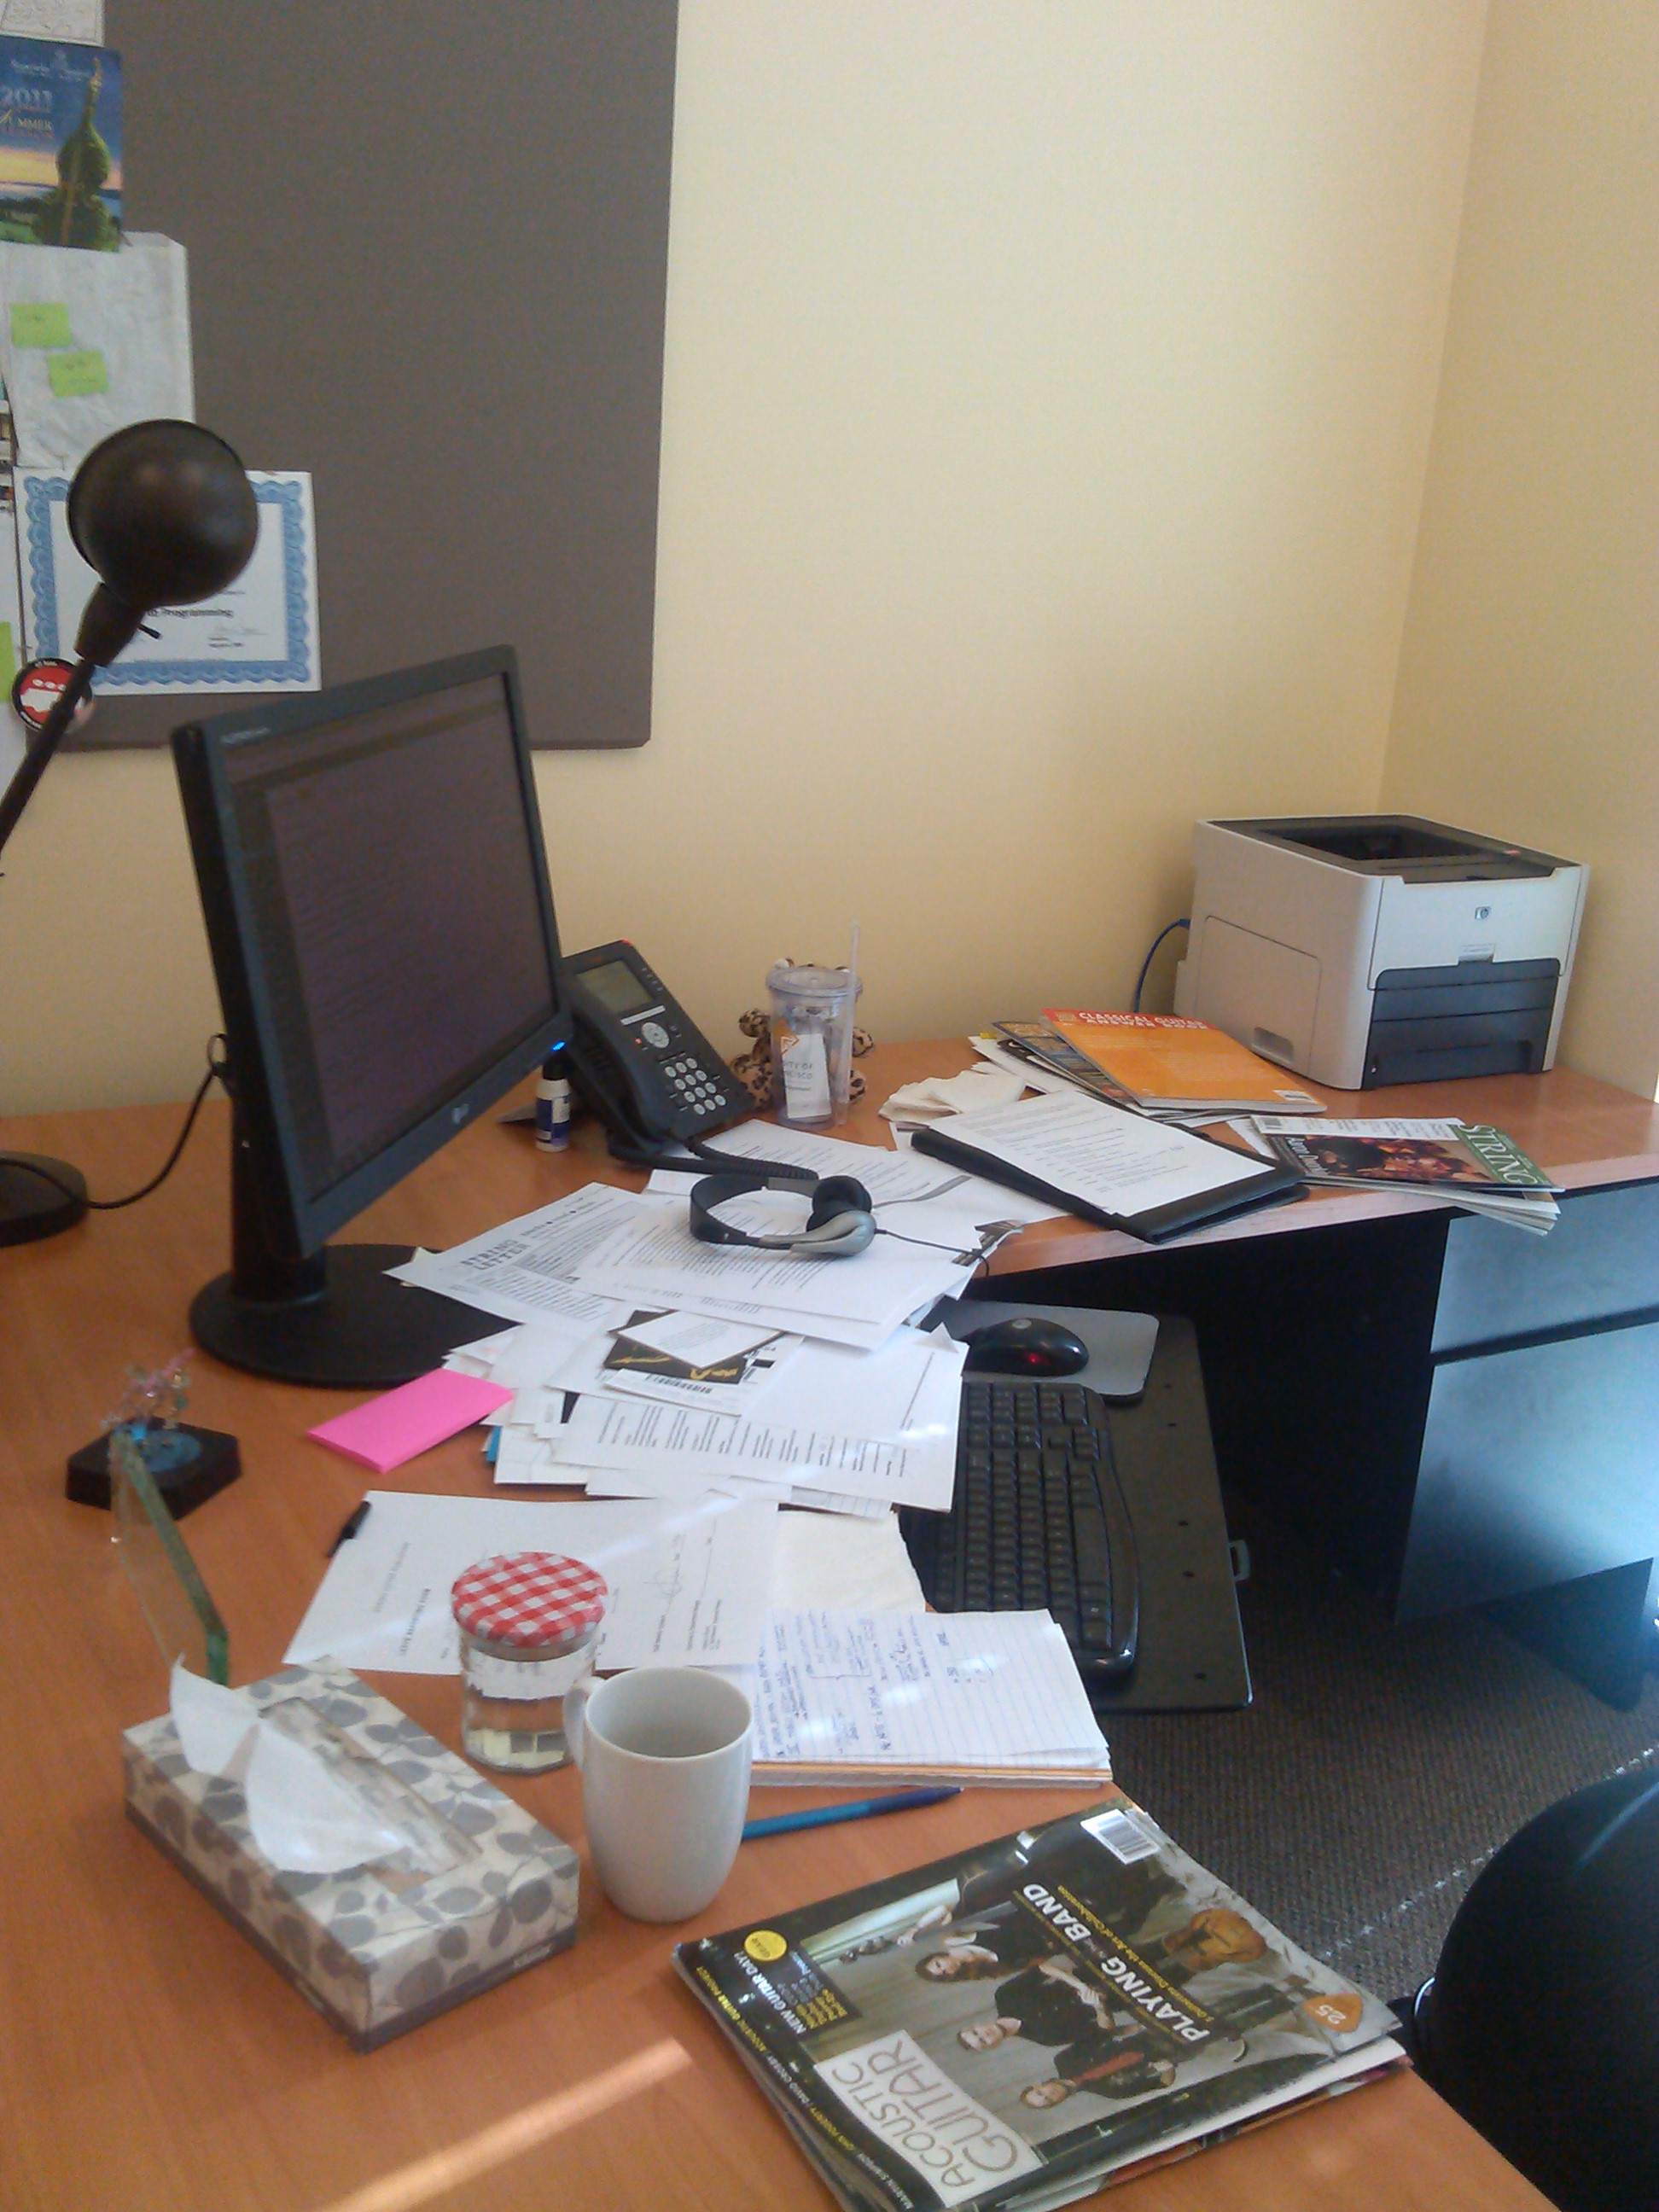 lyzy's messy desk